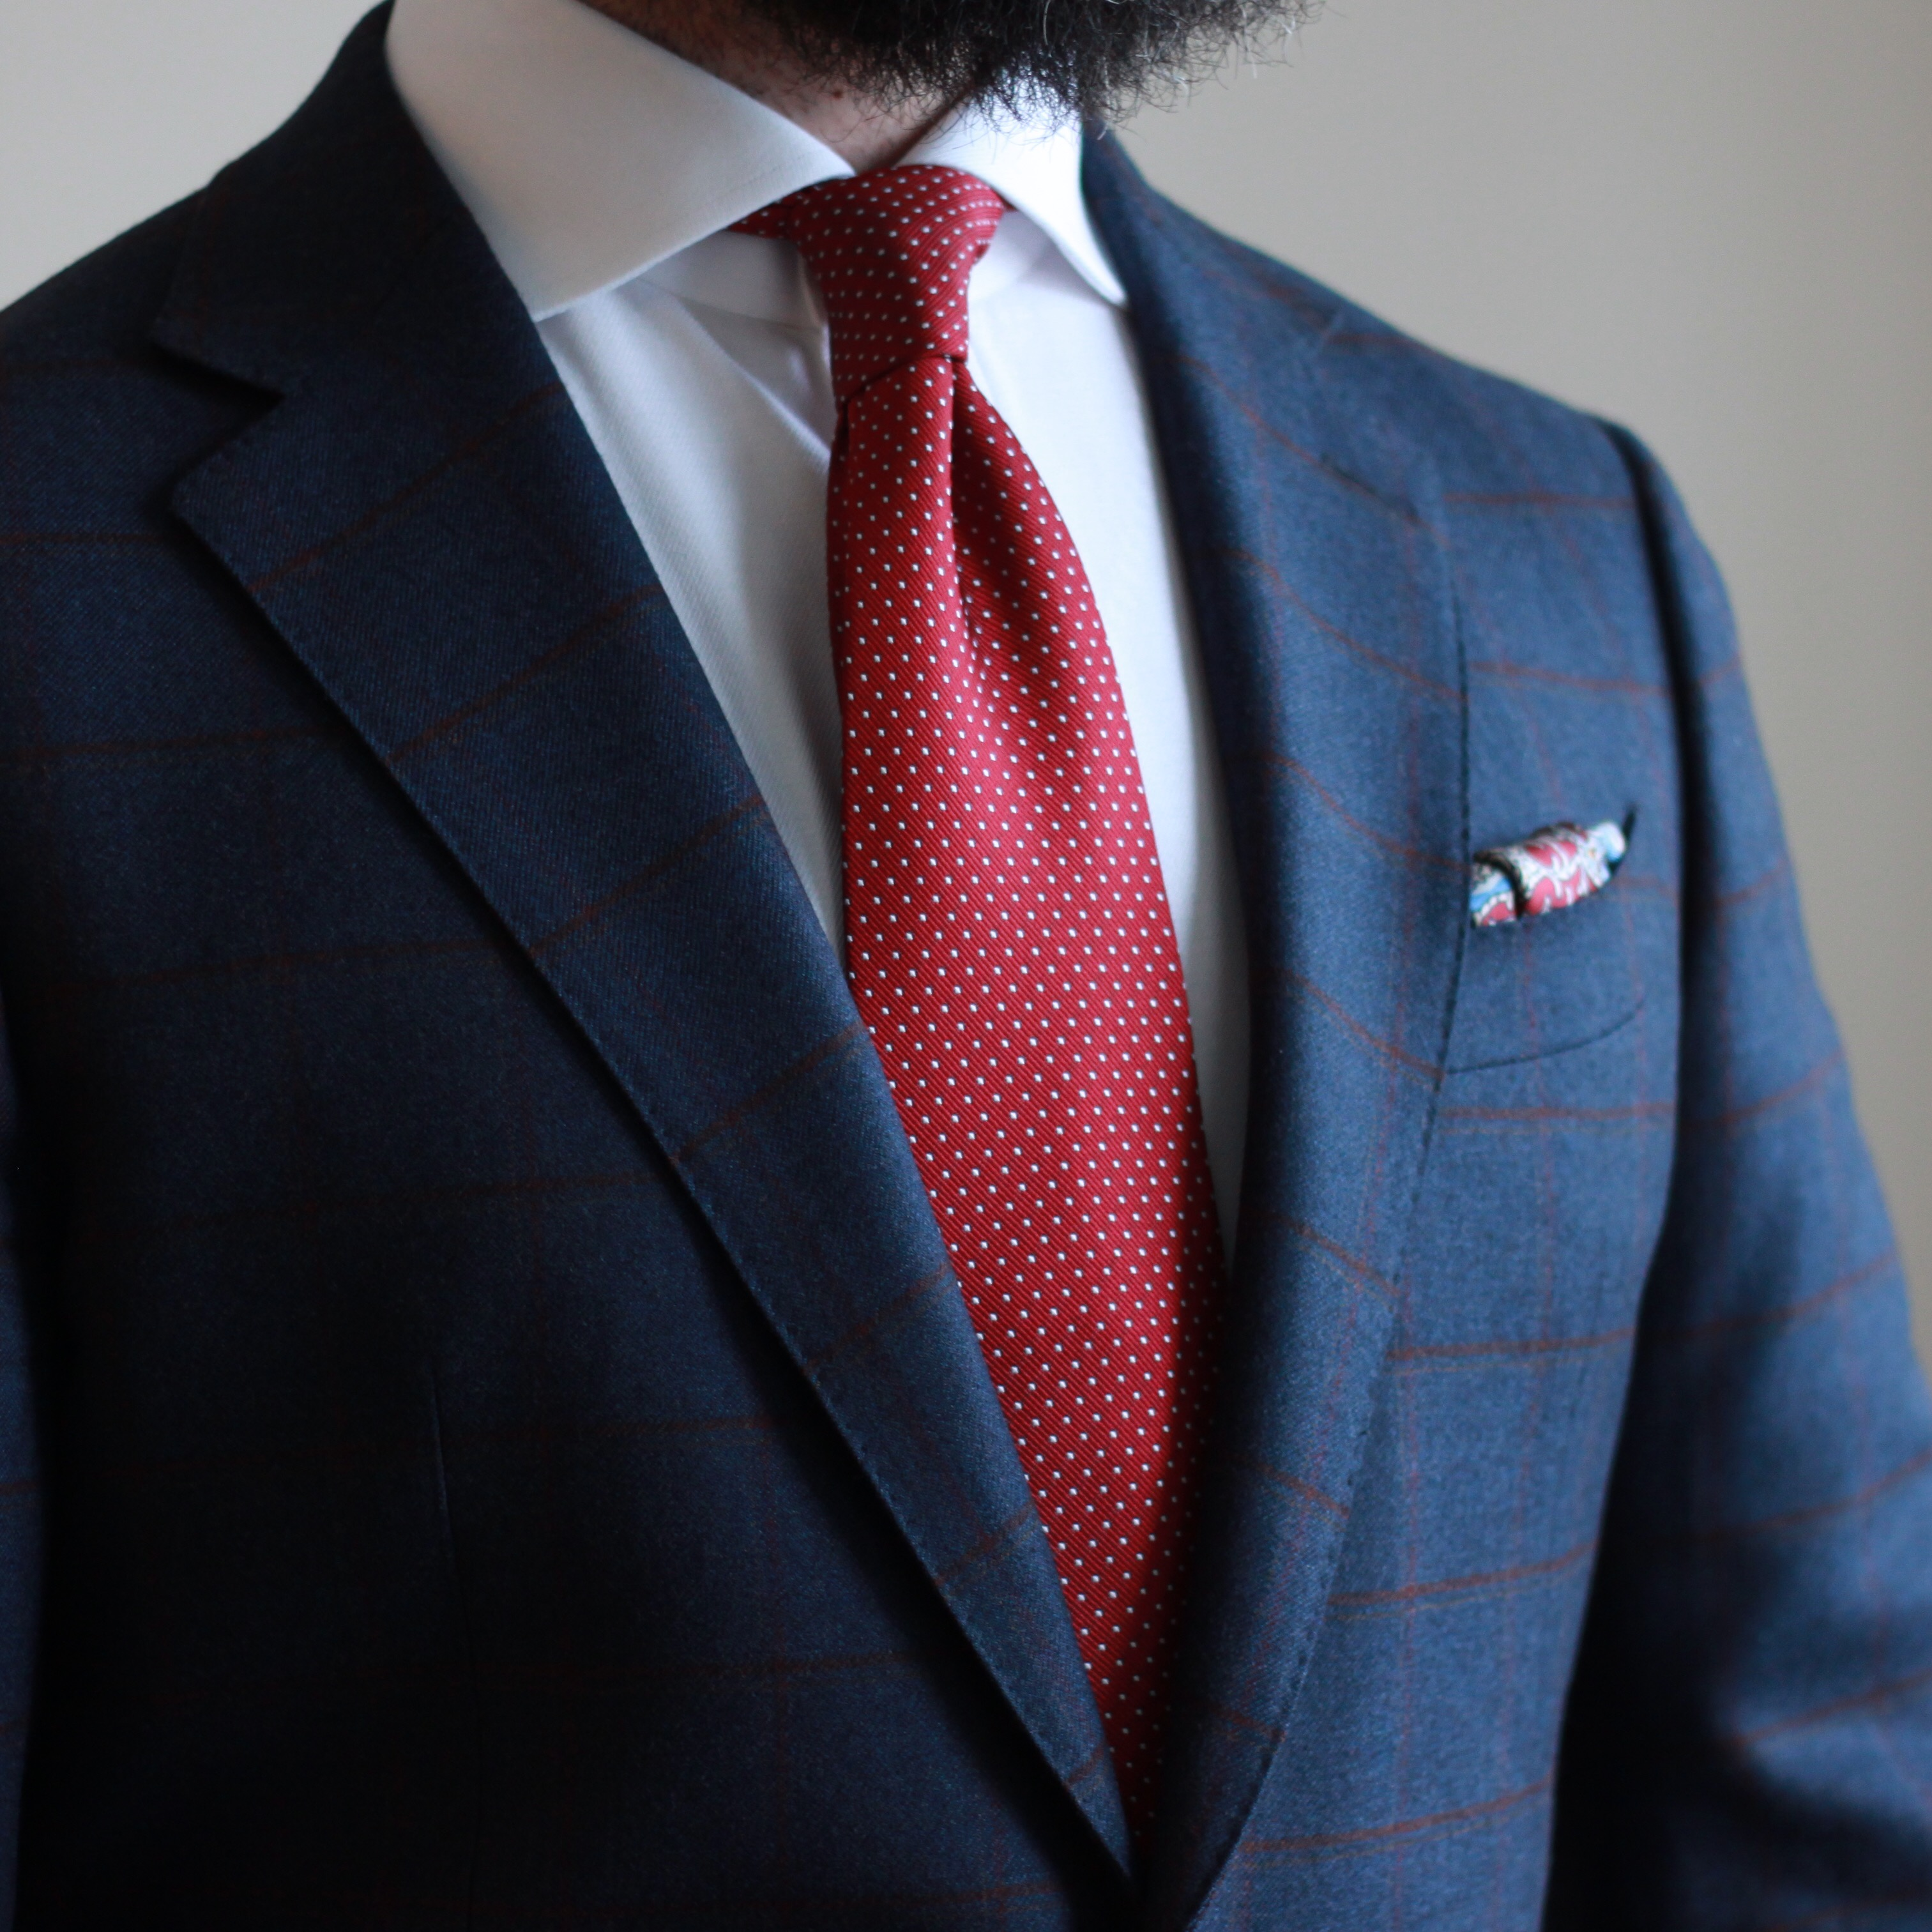 what i wore, pindot tie, pocket square, uniform, sport coat, windowpane